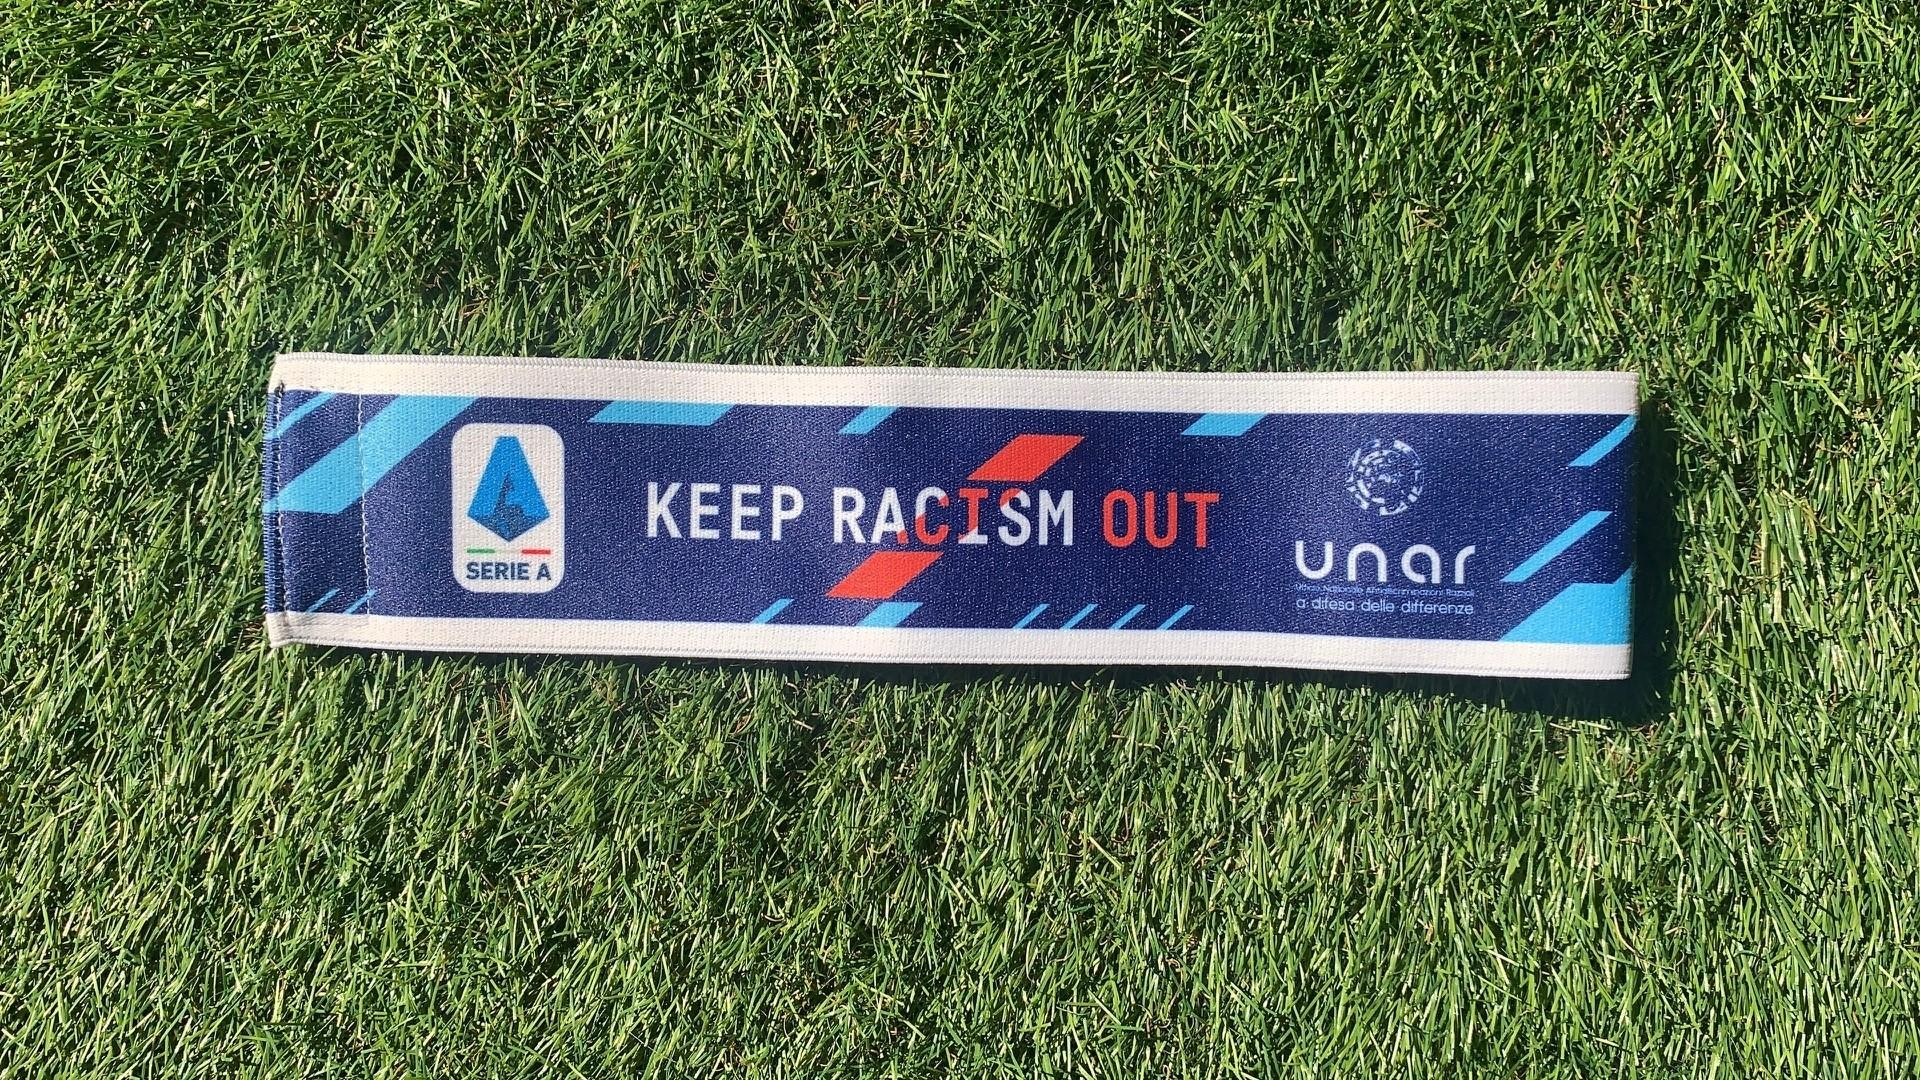 """LEGA SERIE A AND UNAR TOGETHER TO """"KEEP RACISM OUT"""""""